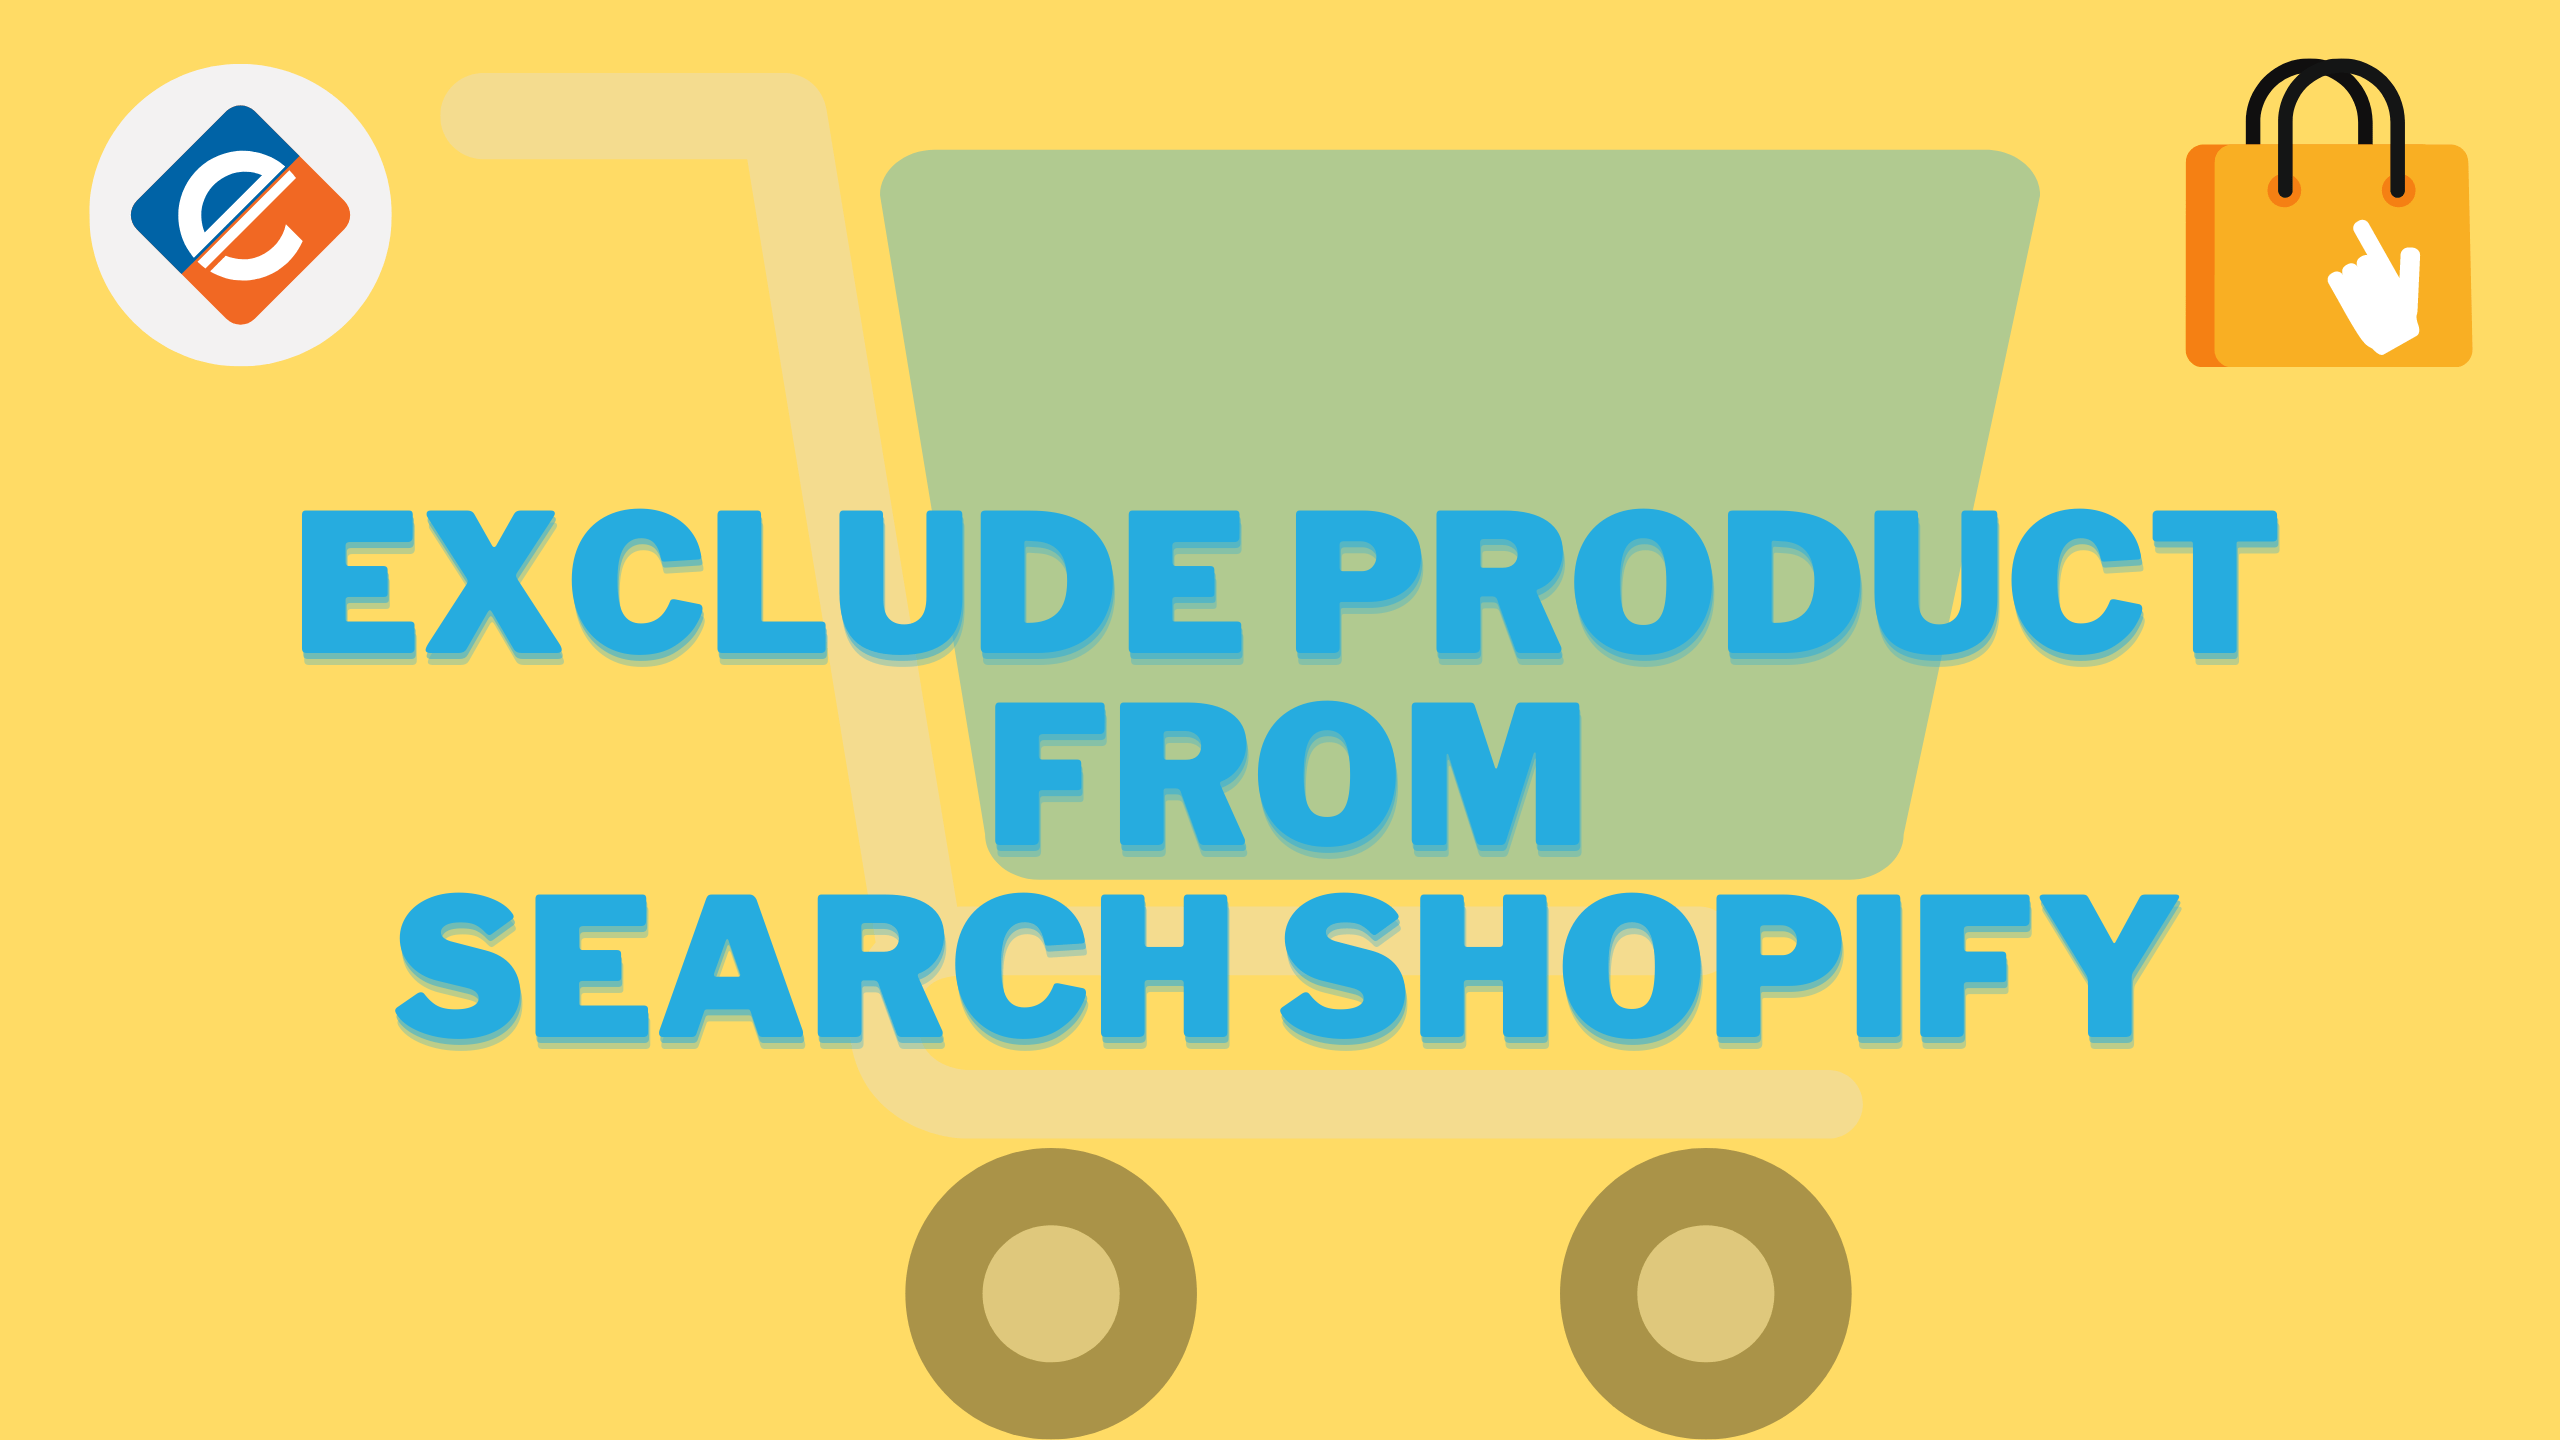 Exclude Product From Search Shopify